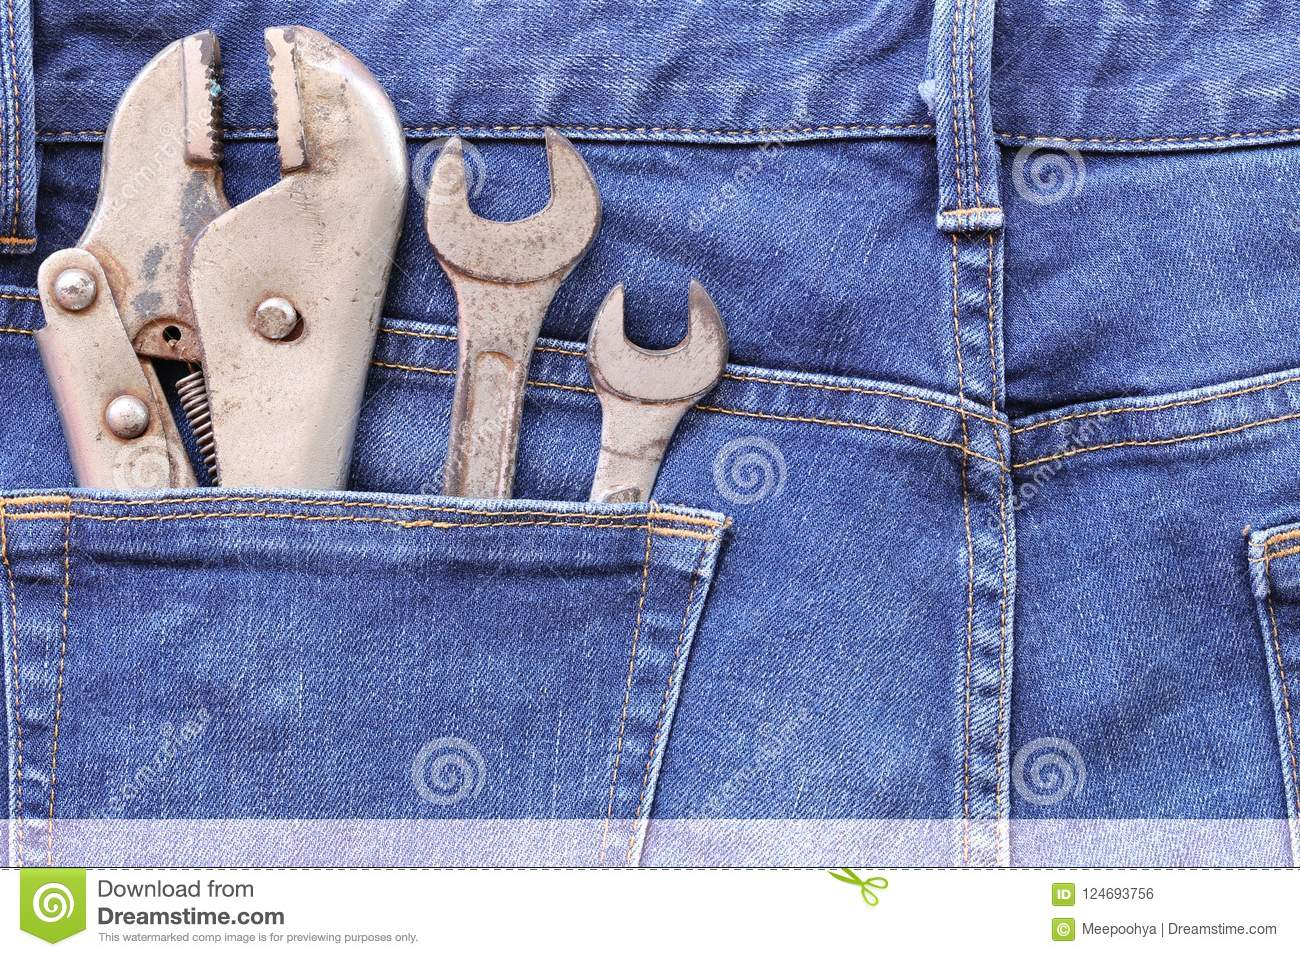 Blue Jeans Of Back Pocket And Have Old Wrench Tool With Rust Stock Photo Image Of Carpenter Construction 124693756